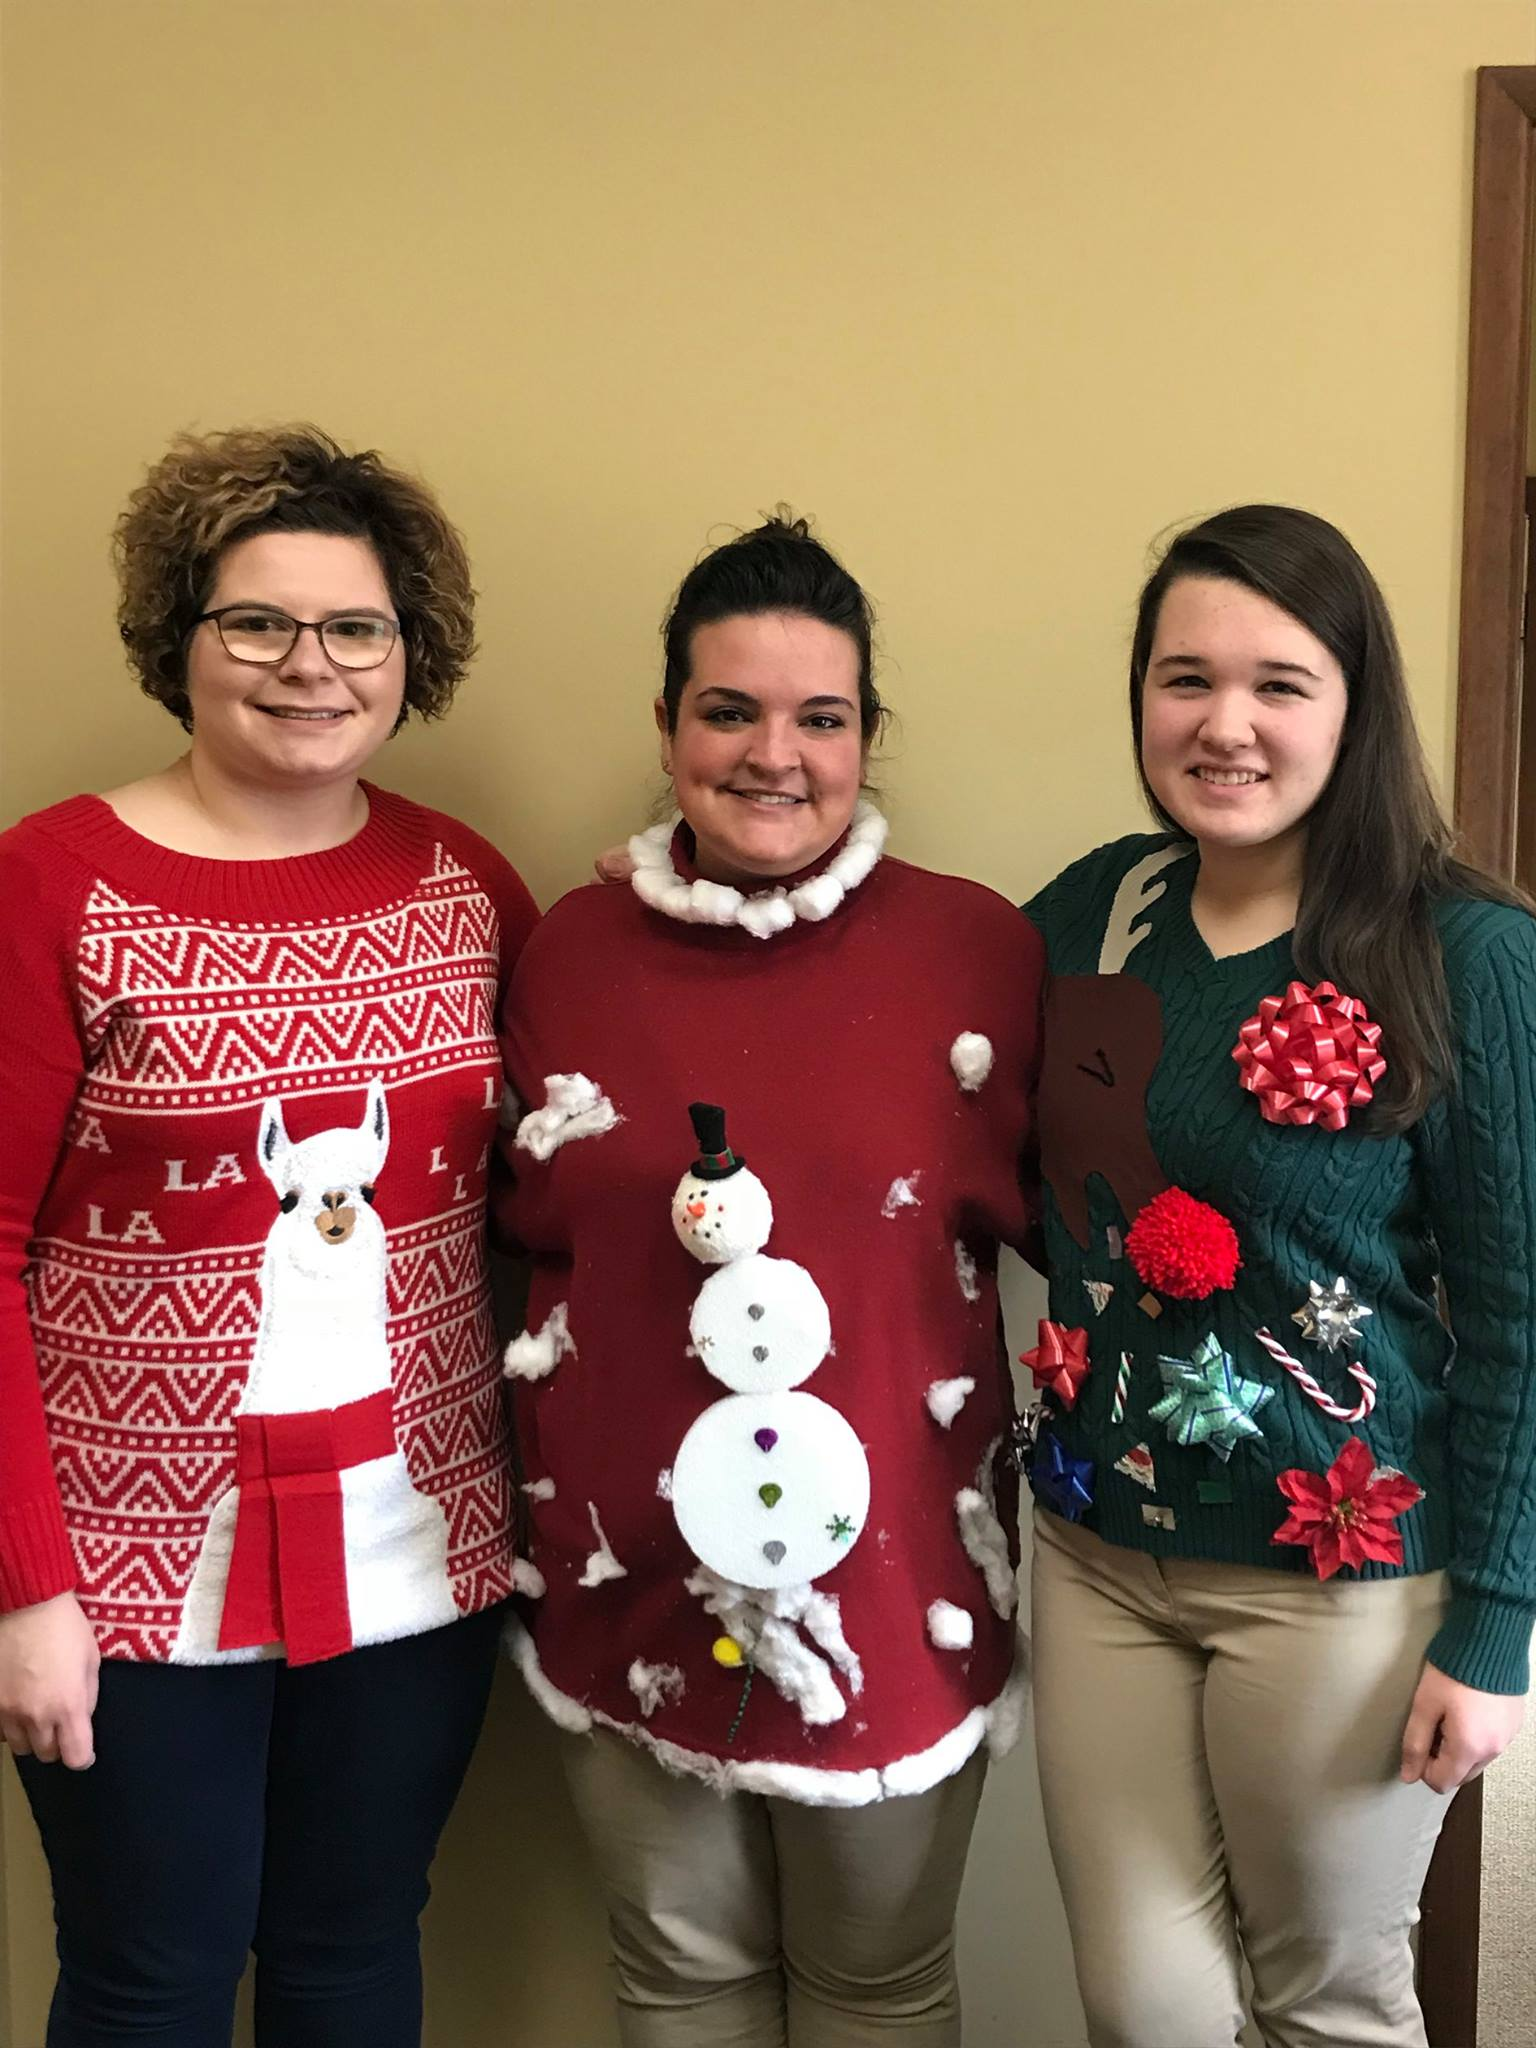 Route 130 Ugly Christmas Sweater Day 2017